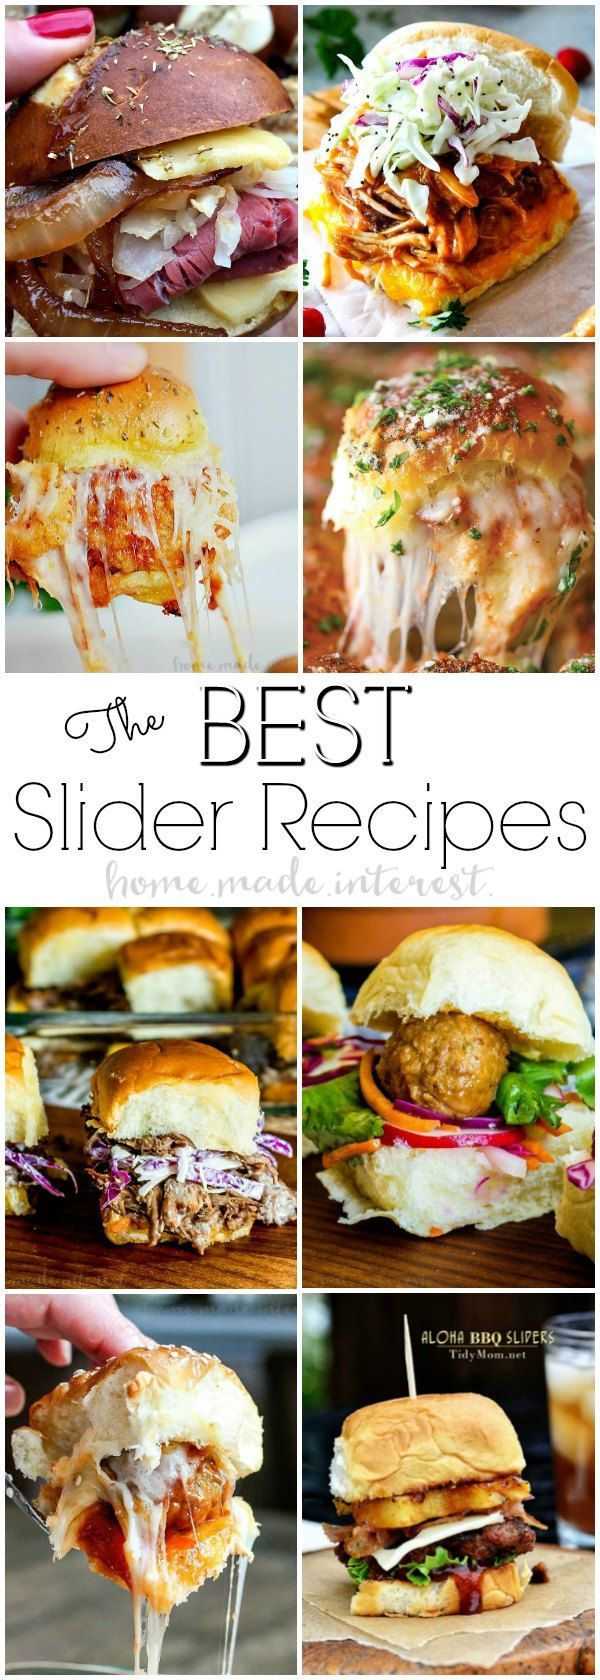 Best Slider Recipes | This is the ultimate guide to how to make sliders or pull apart sandwiches, along with some of the best slider recipes ever! These slider recipes are the perfect football food and tailgating recipes. Amazing slider recipes for a Super Bowl party! Make these slider recipes as a make ahead party appetizer or a quick and easy weeknight dinner.